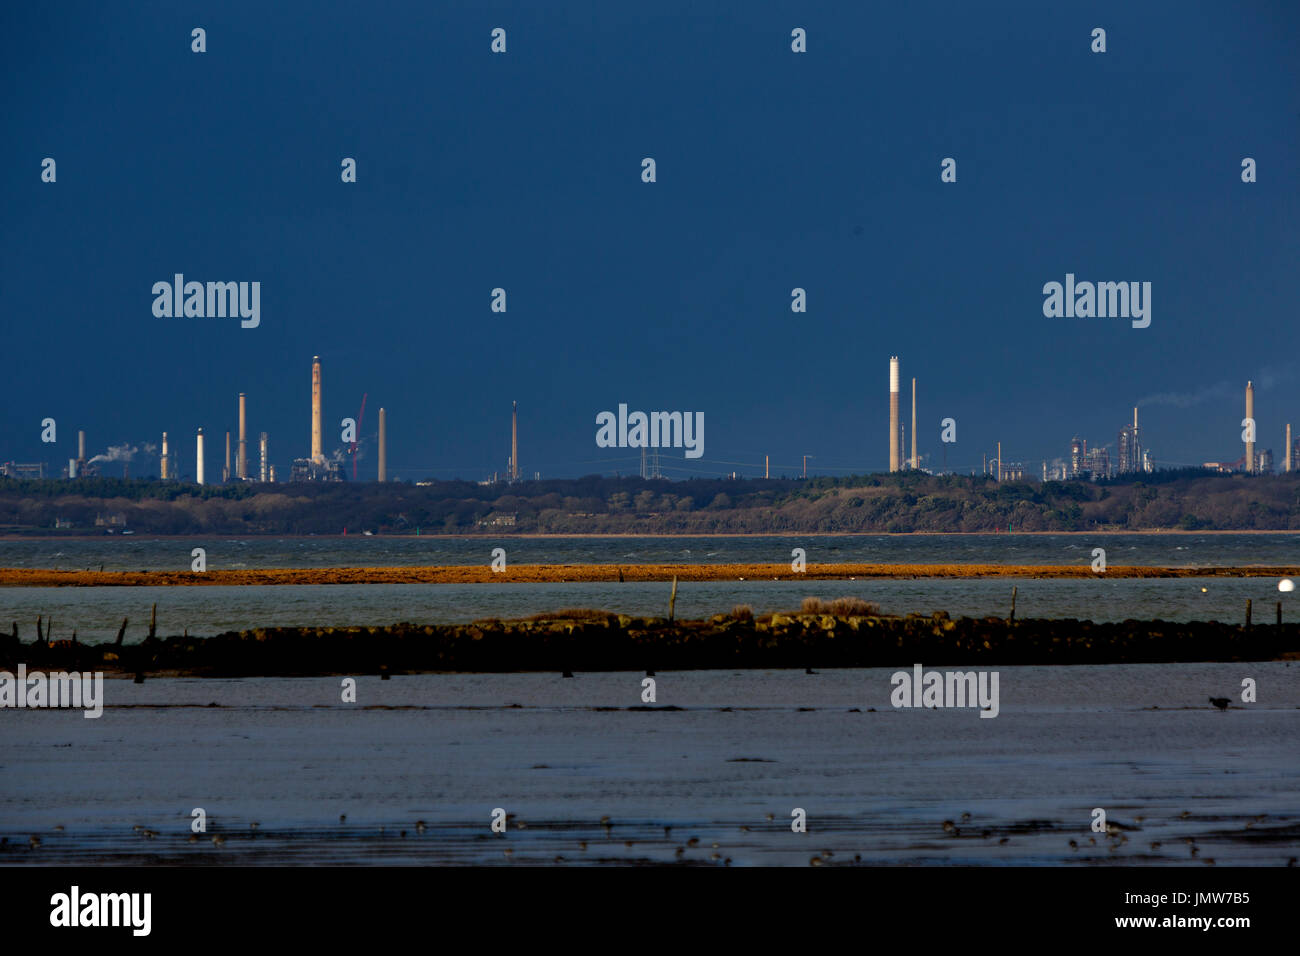 Fawley Oil Refinery viewed from Newtown nature reserv, Isle of Wight, - Stock Image